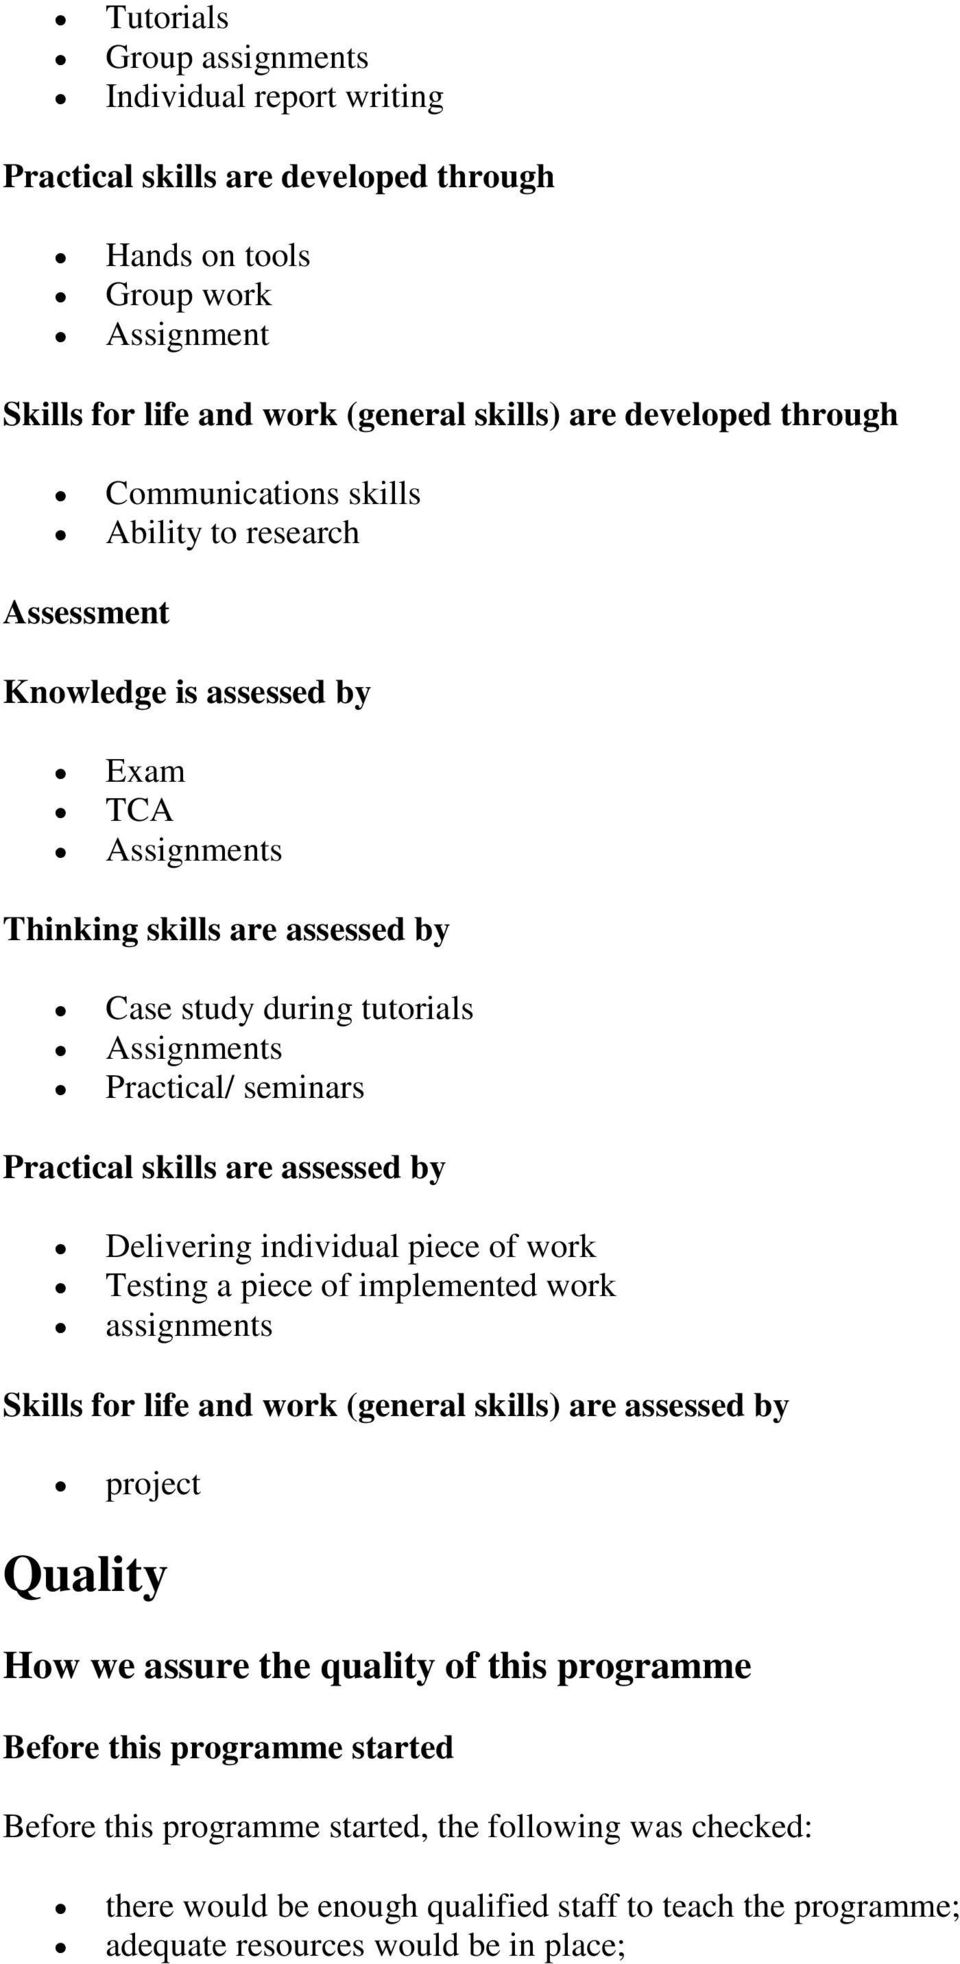 Practical skills are assessed by Delivering individual piece of work Testing a piece of implemented work assignments Skills for life and work (general skills) are assessed by project Quality How we